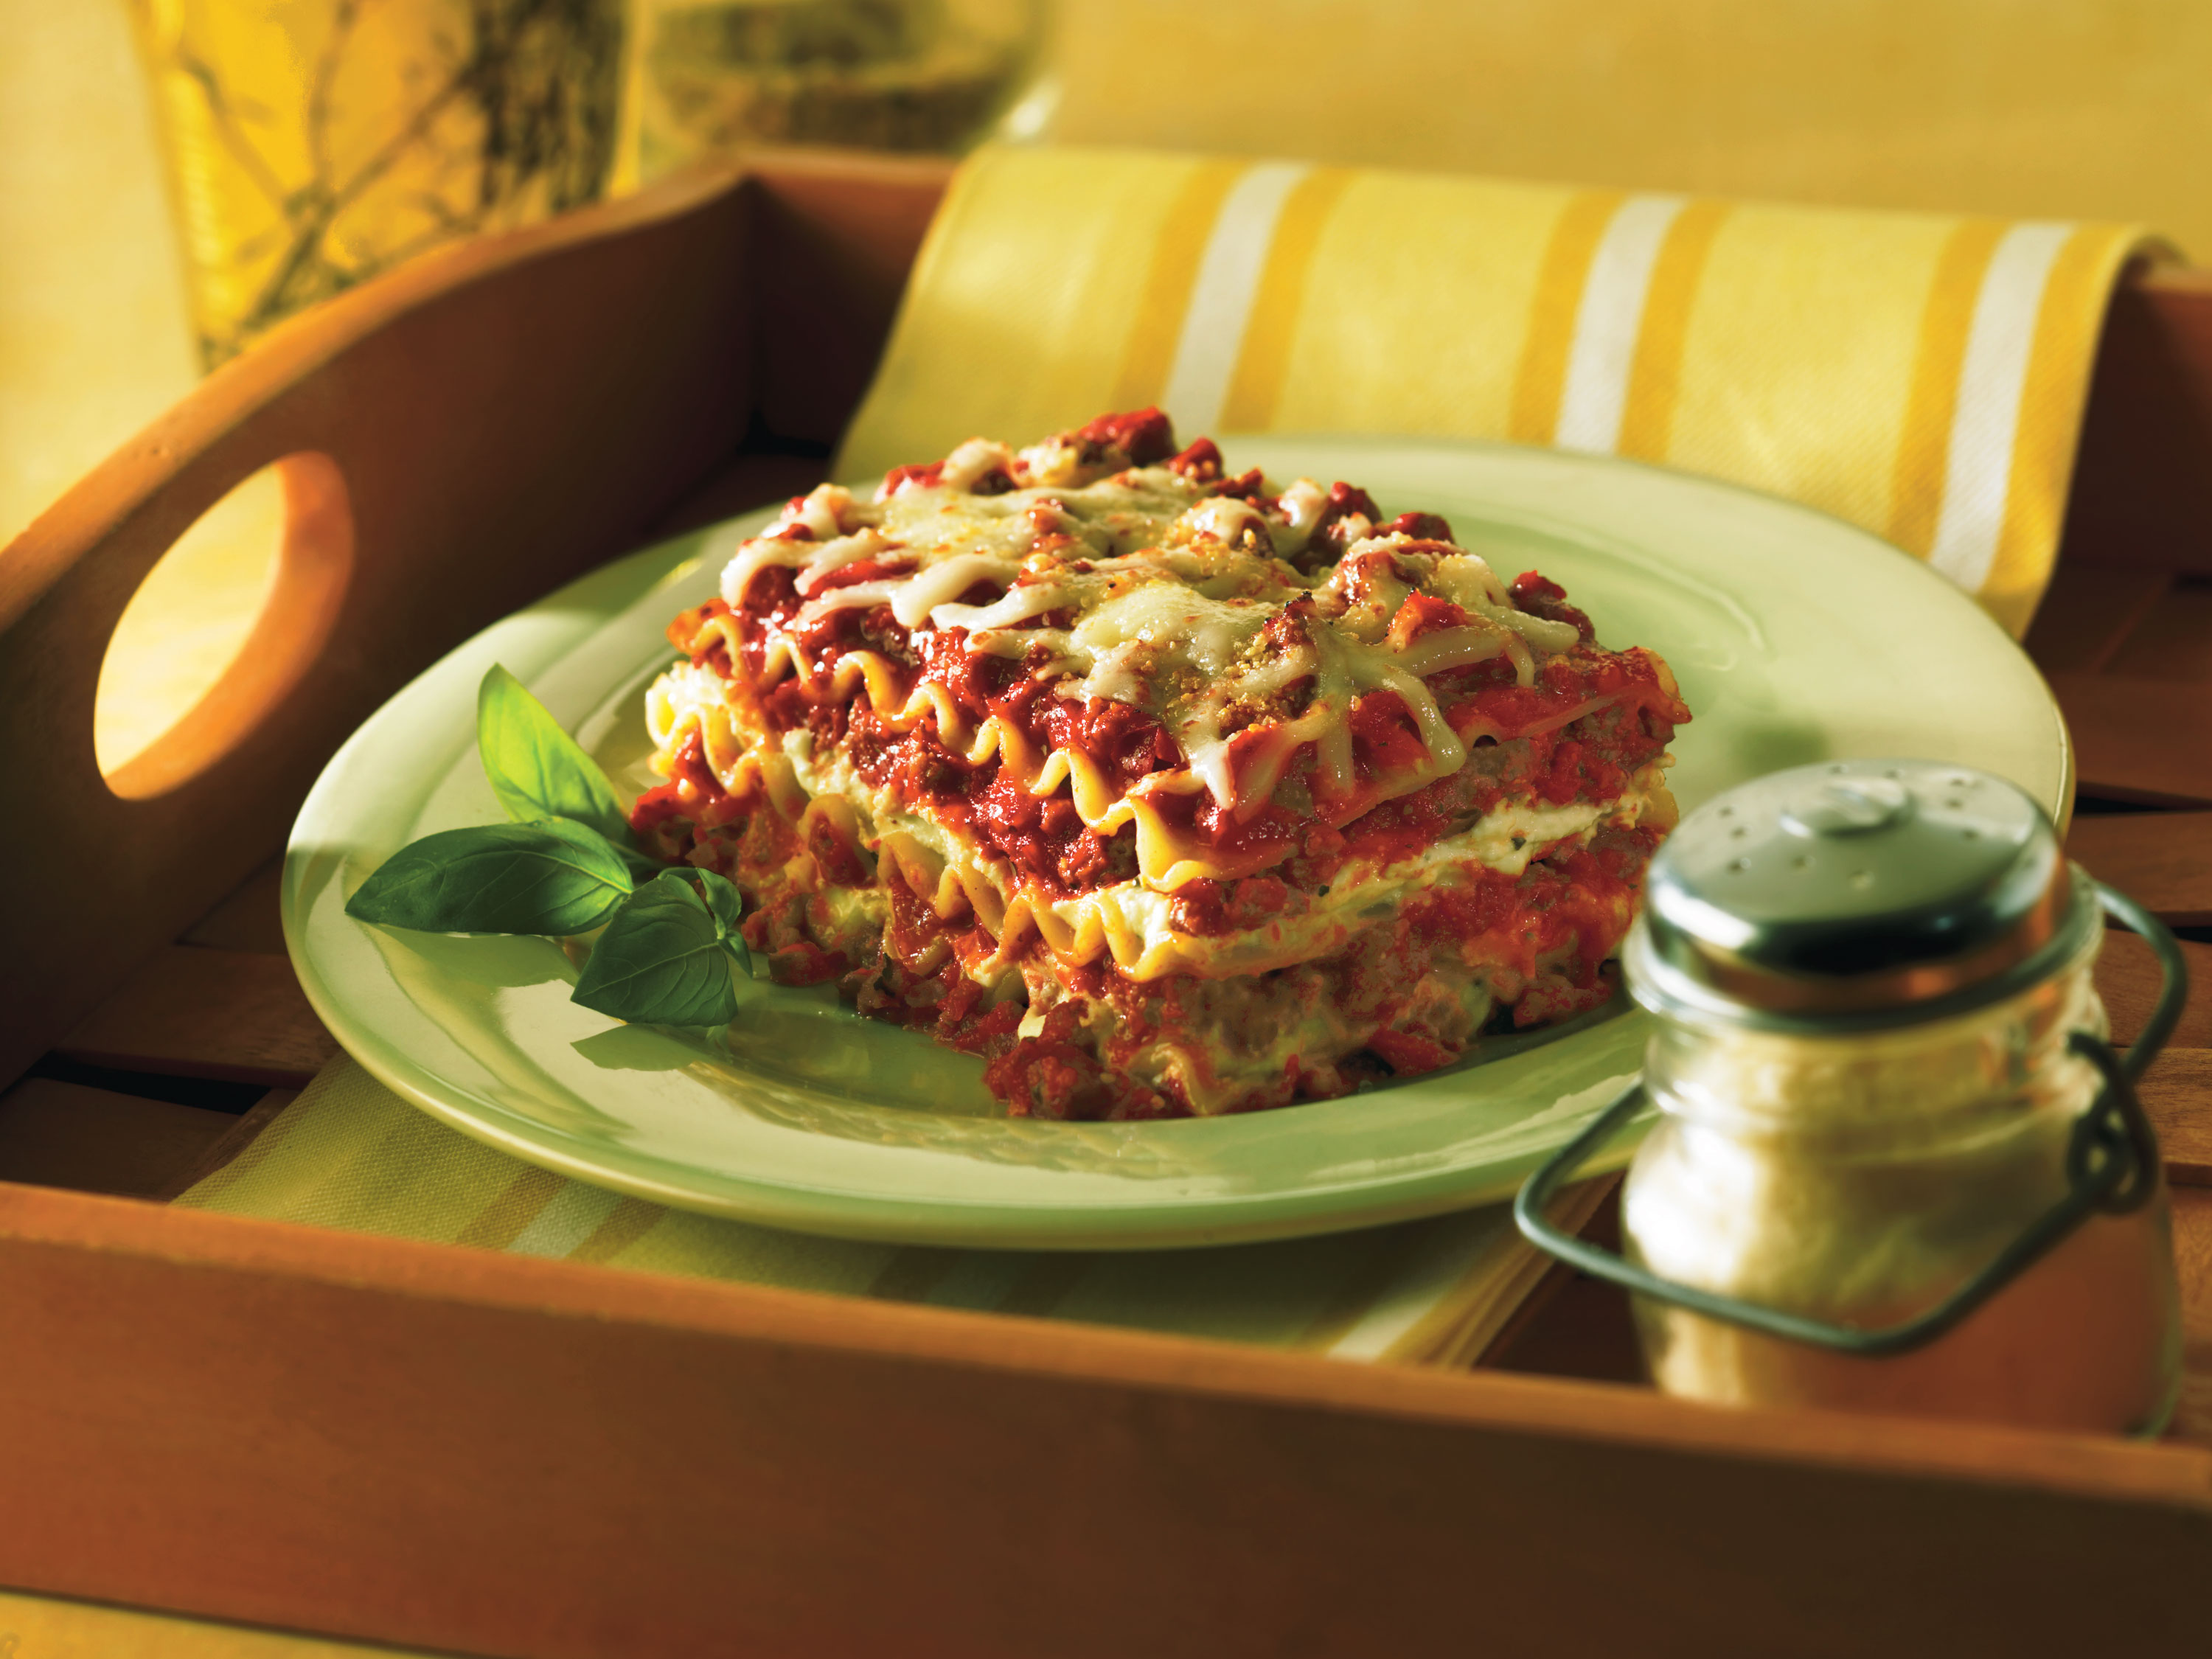 No-boil classic lasagna with layers of noodles, tomato sauce, ground beef, and cheese